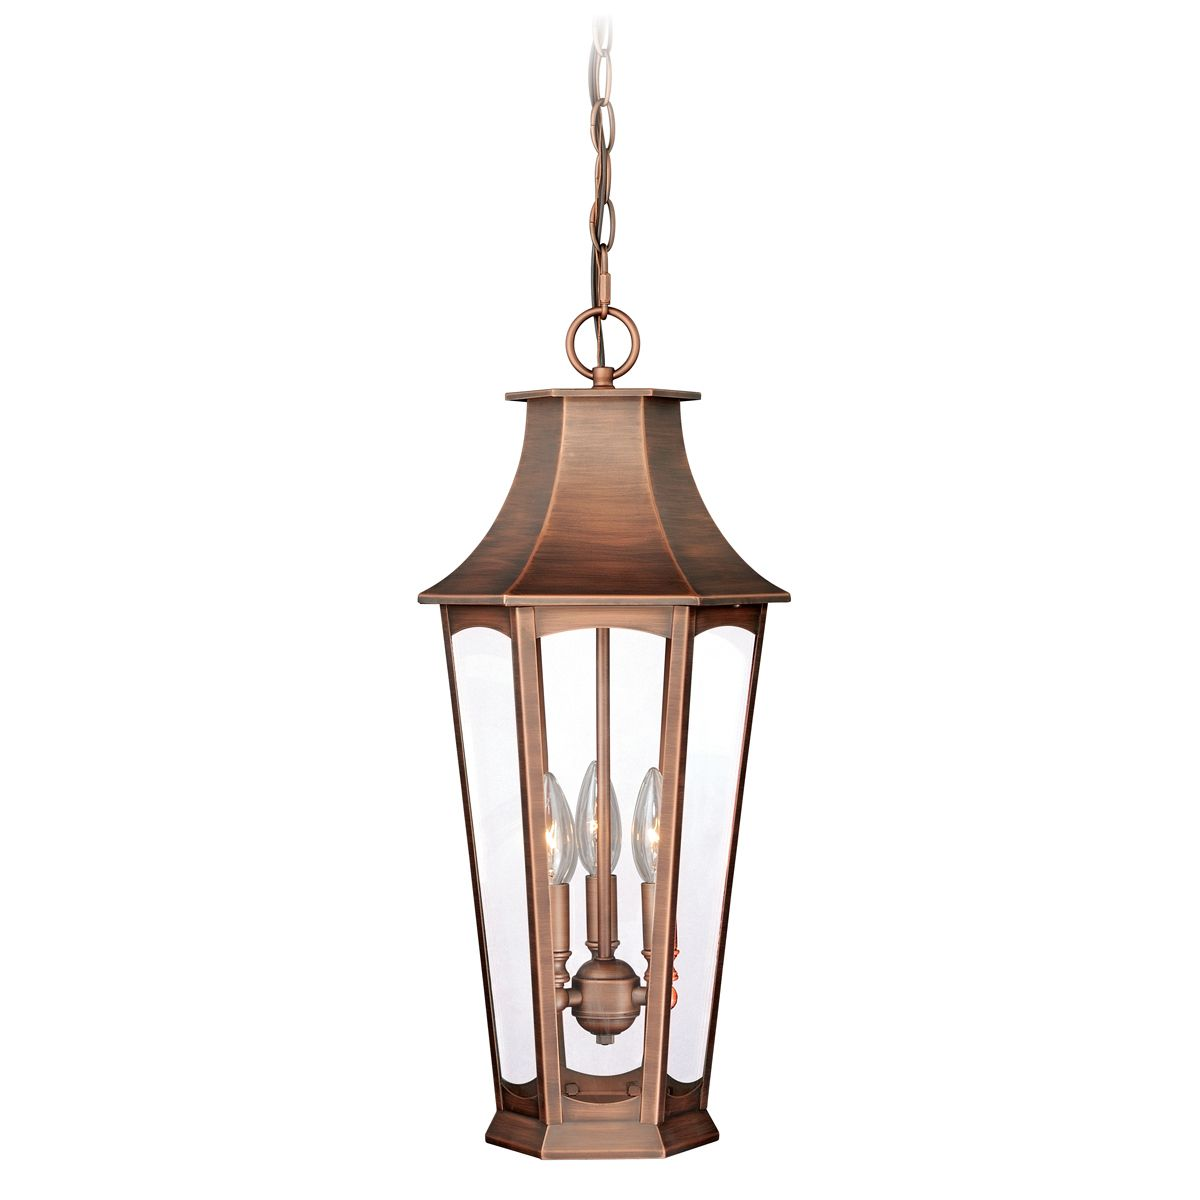 Shiloh Outdoor Pendant - Brushed Copper